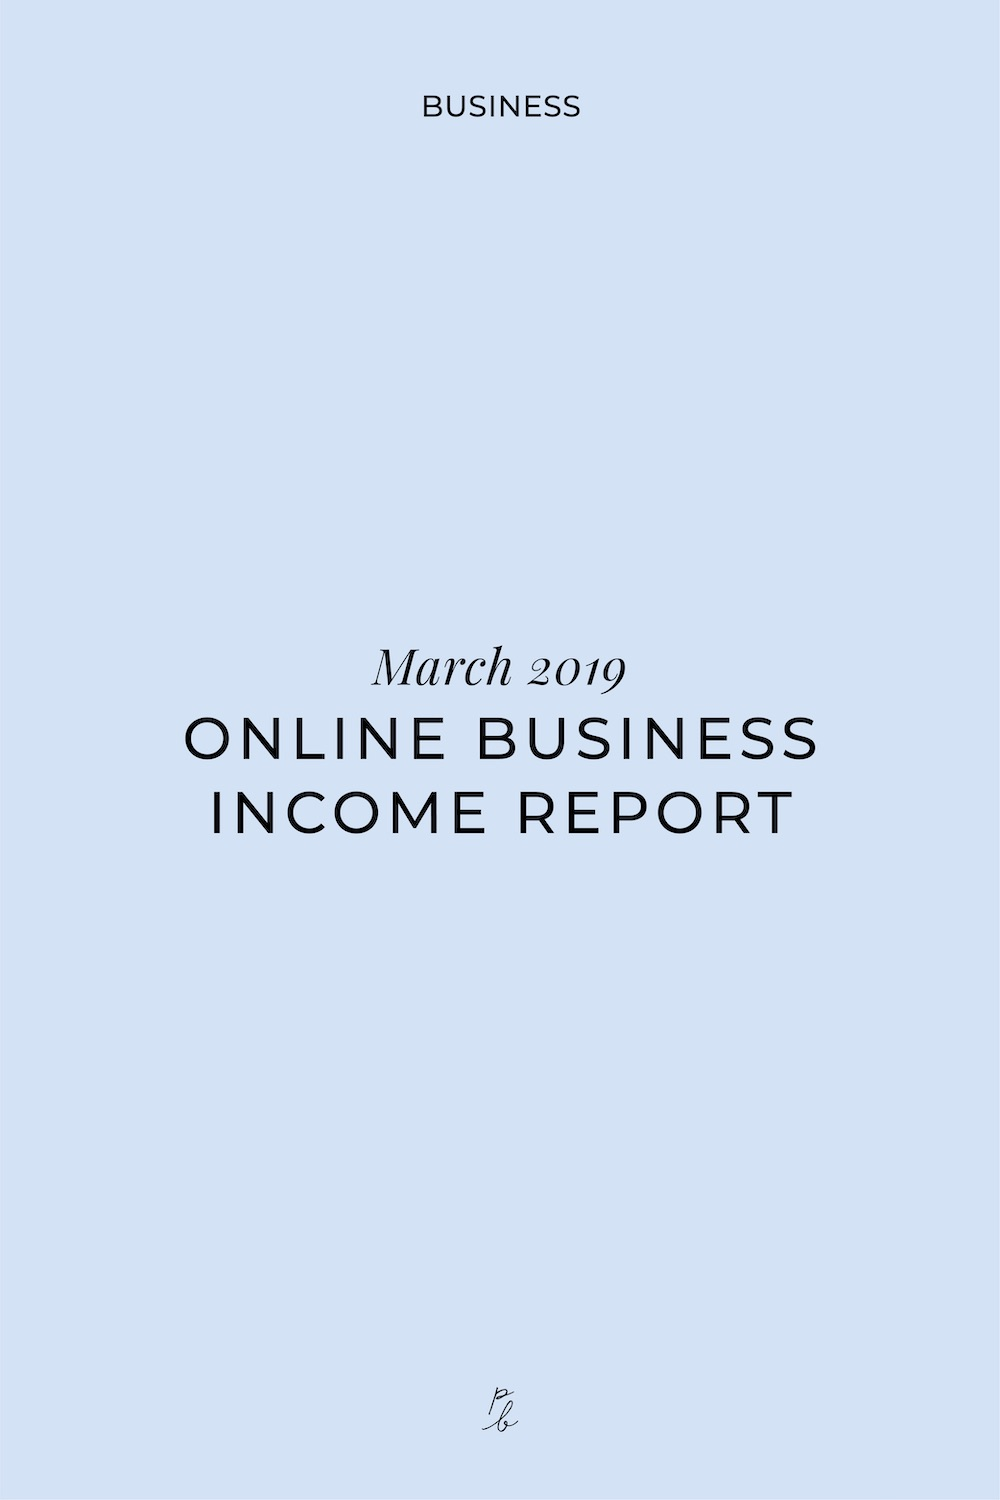 3-2-March 2019 online business income report.jpg